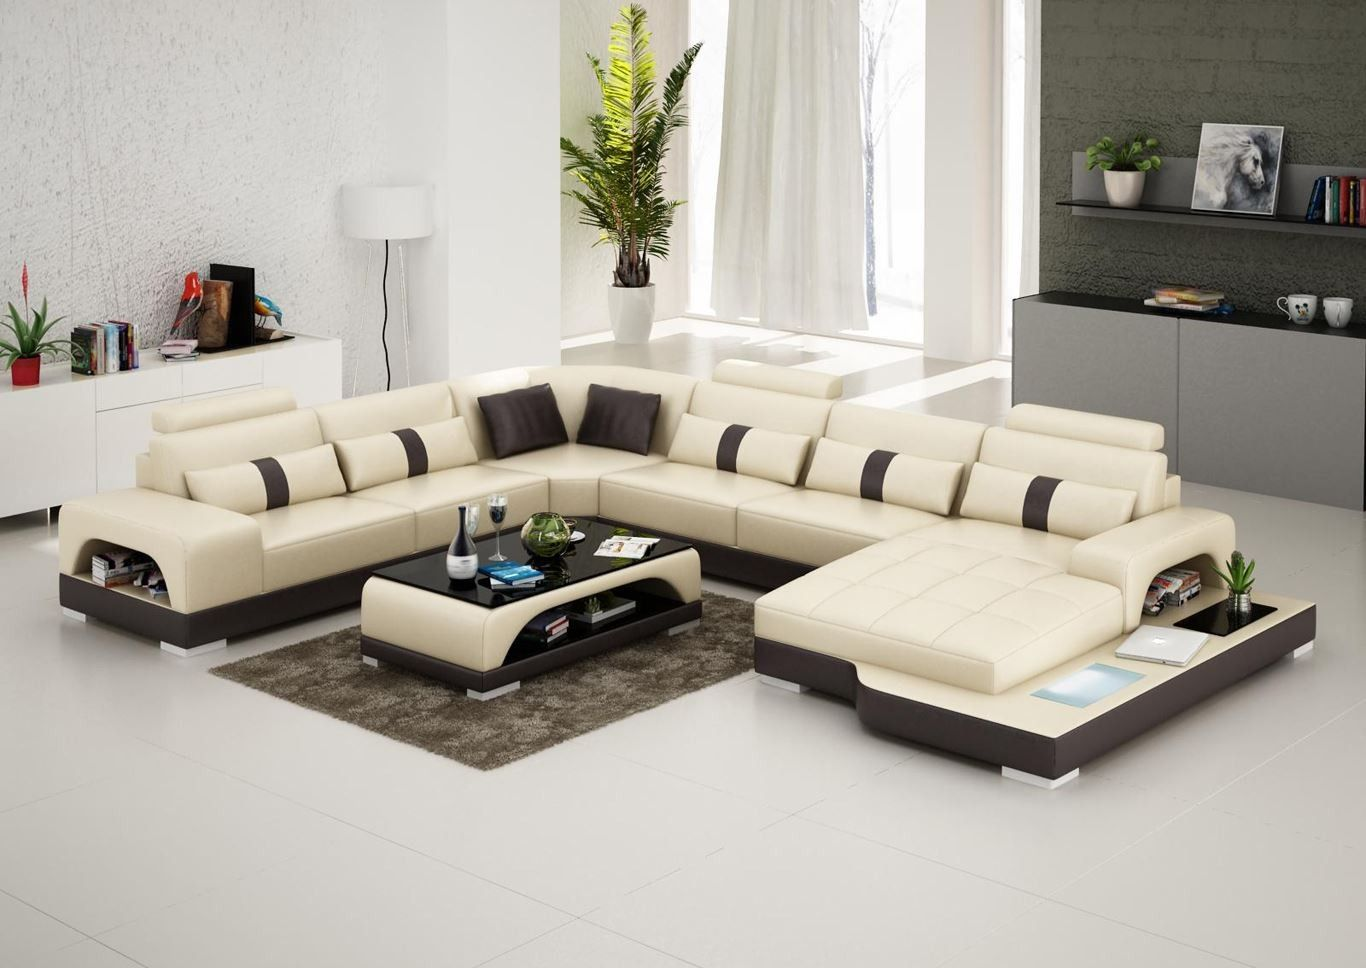 fancy sectional sofas white leather 2 seater sofa connie living room furniture